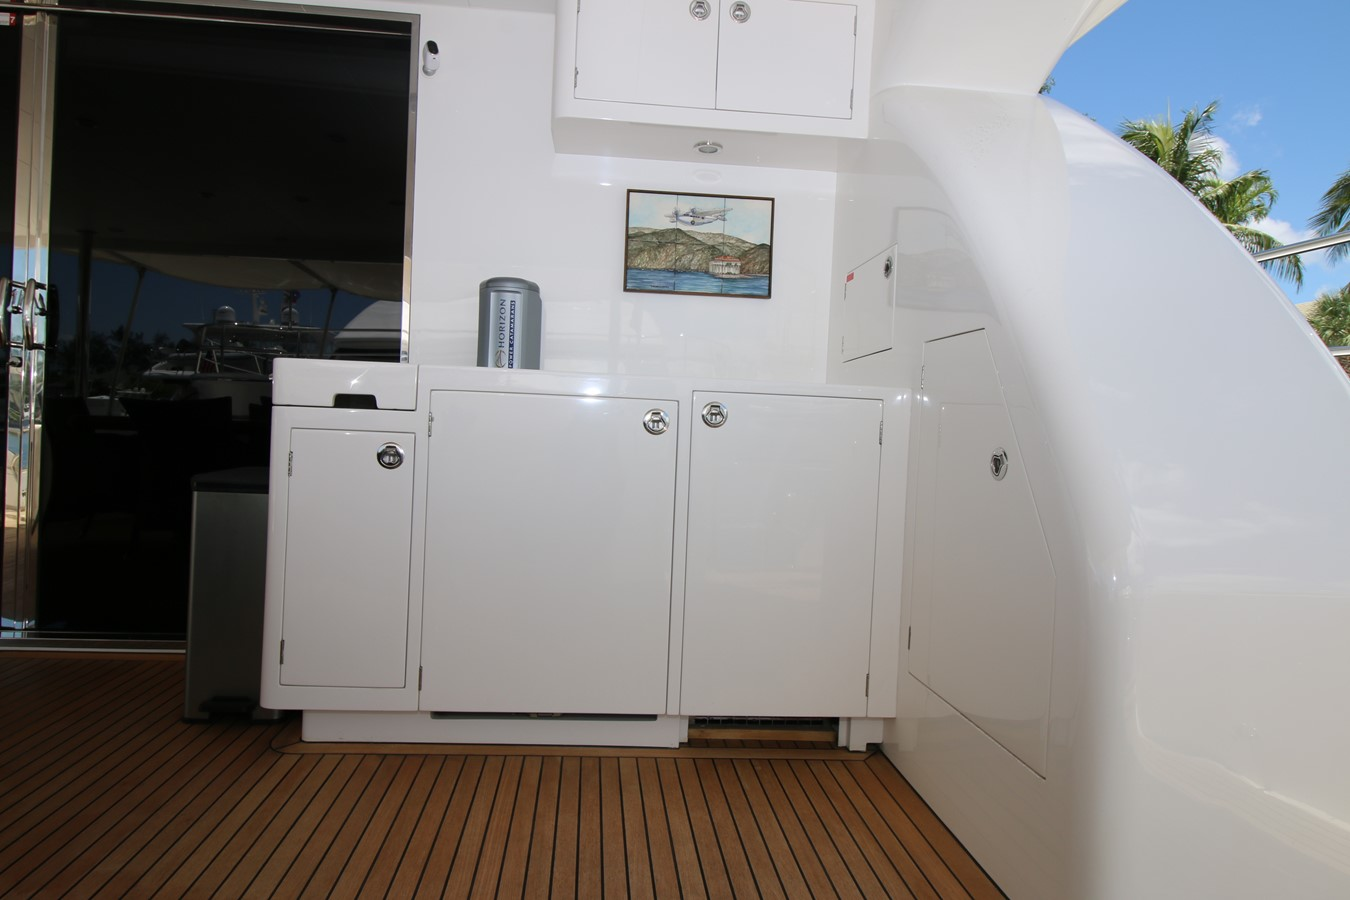 AFT DECK BAR 2014 HORIZON PC60 SKYLOUNGE Catamaran 2547229